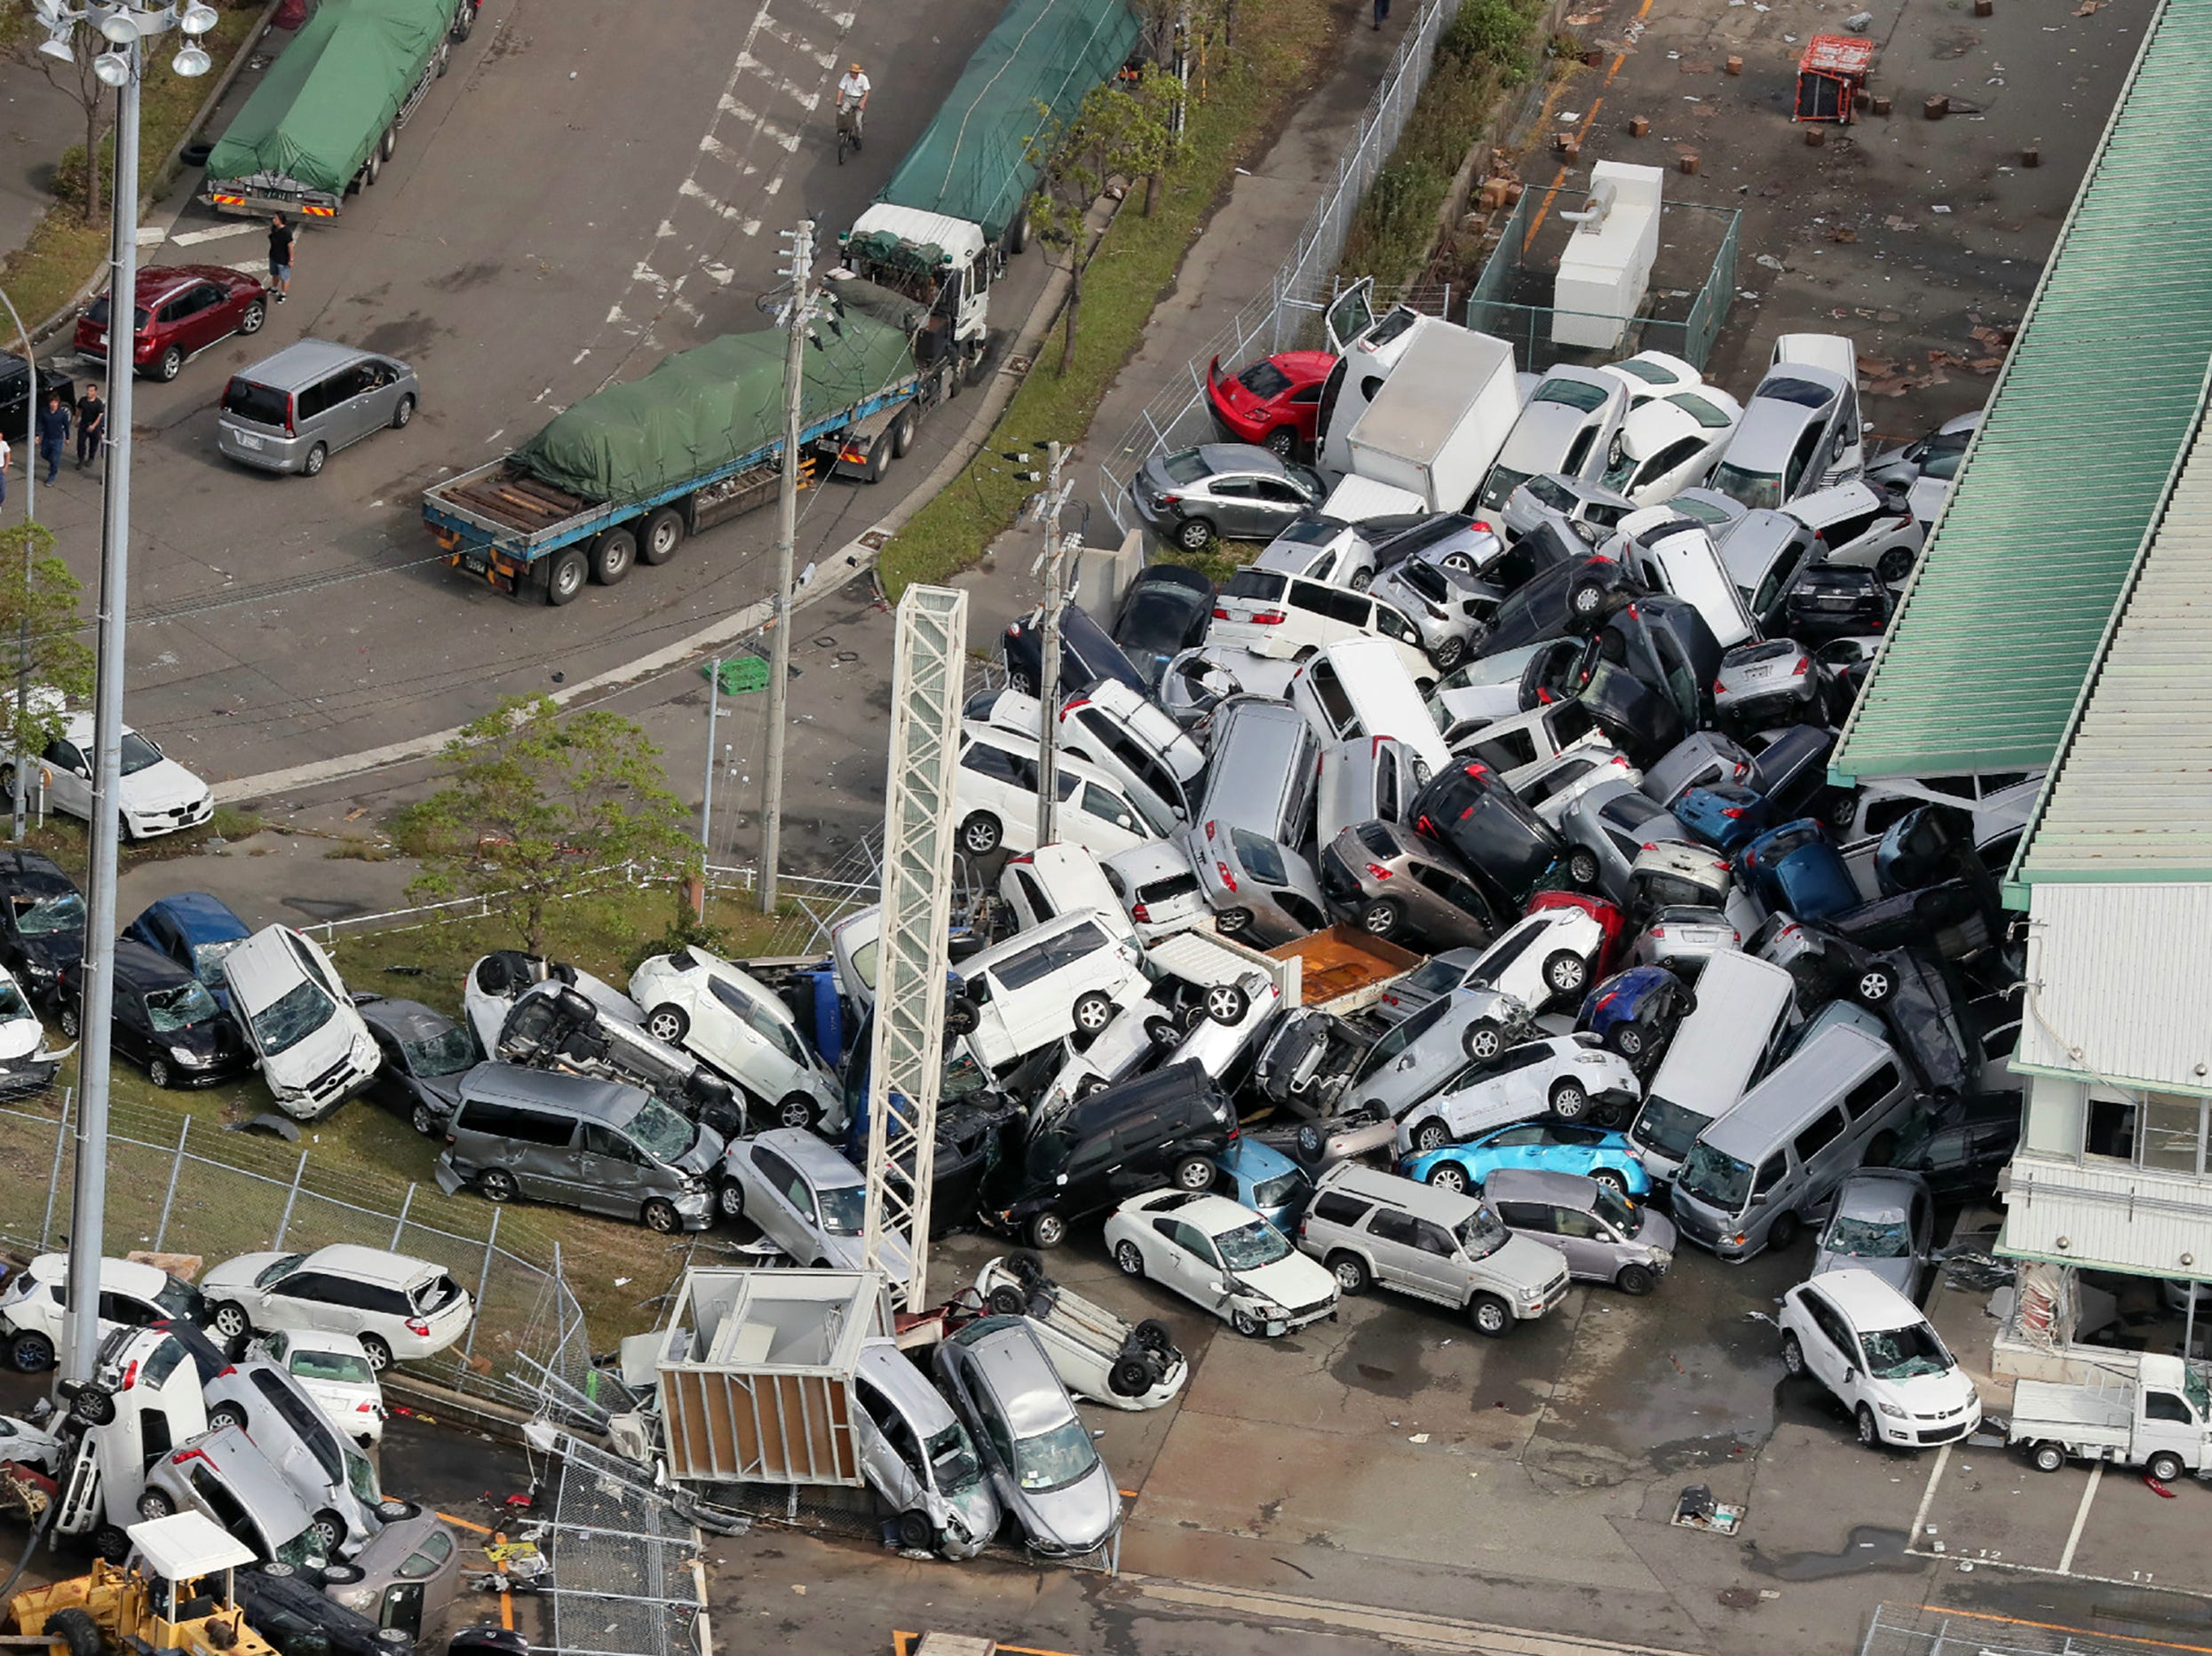 An aerial view from a Jiji Press helicopter shows vehicles piled in a heap due to strong winds in Kobe, Hyogo prefecture on Sept. 5, 2018, after typhoon Jebi hit the west coast of Japan. The toll in the most powerful typhoon to hit Japan in a quarter century to nine, with thousands stranded at a major airport because of storm damage.